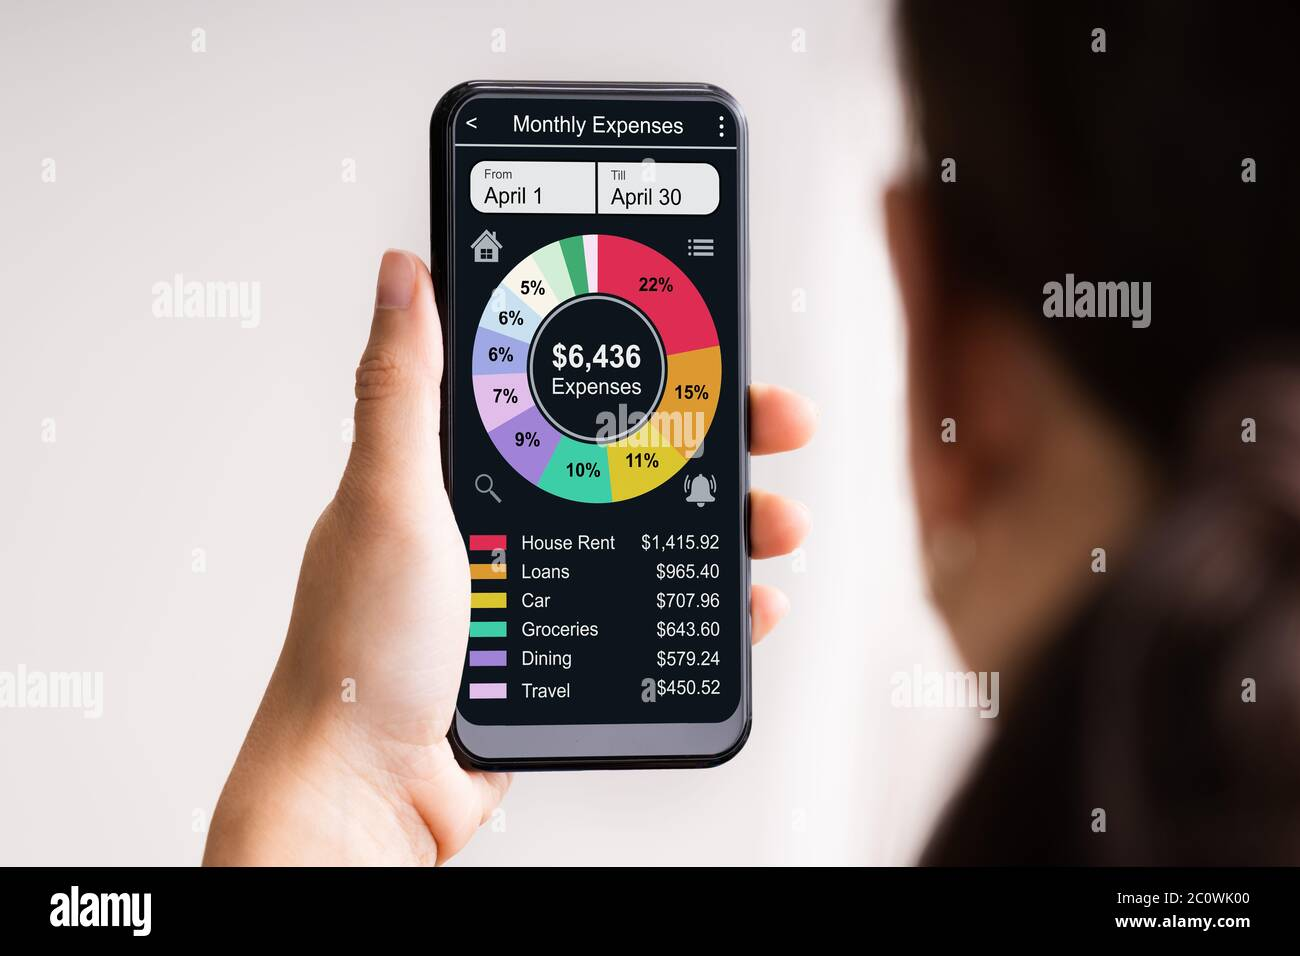 Online Bank Mobile Phone App For Money Tracking Stock Photo